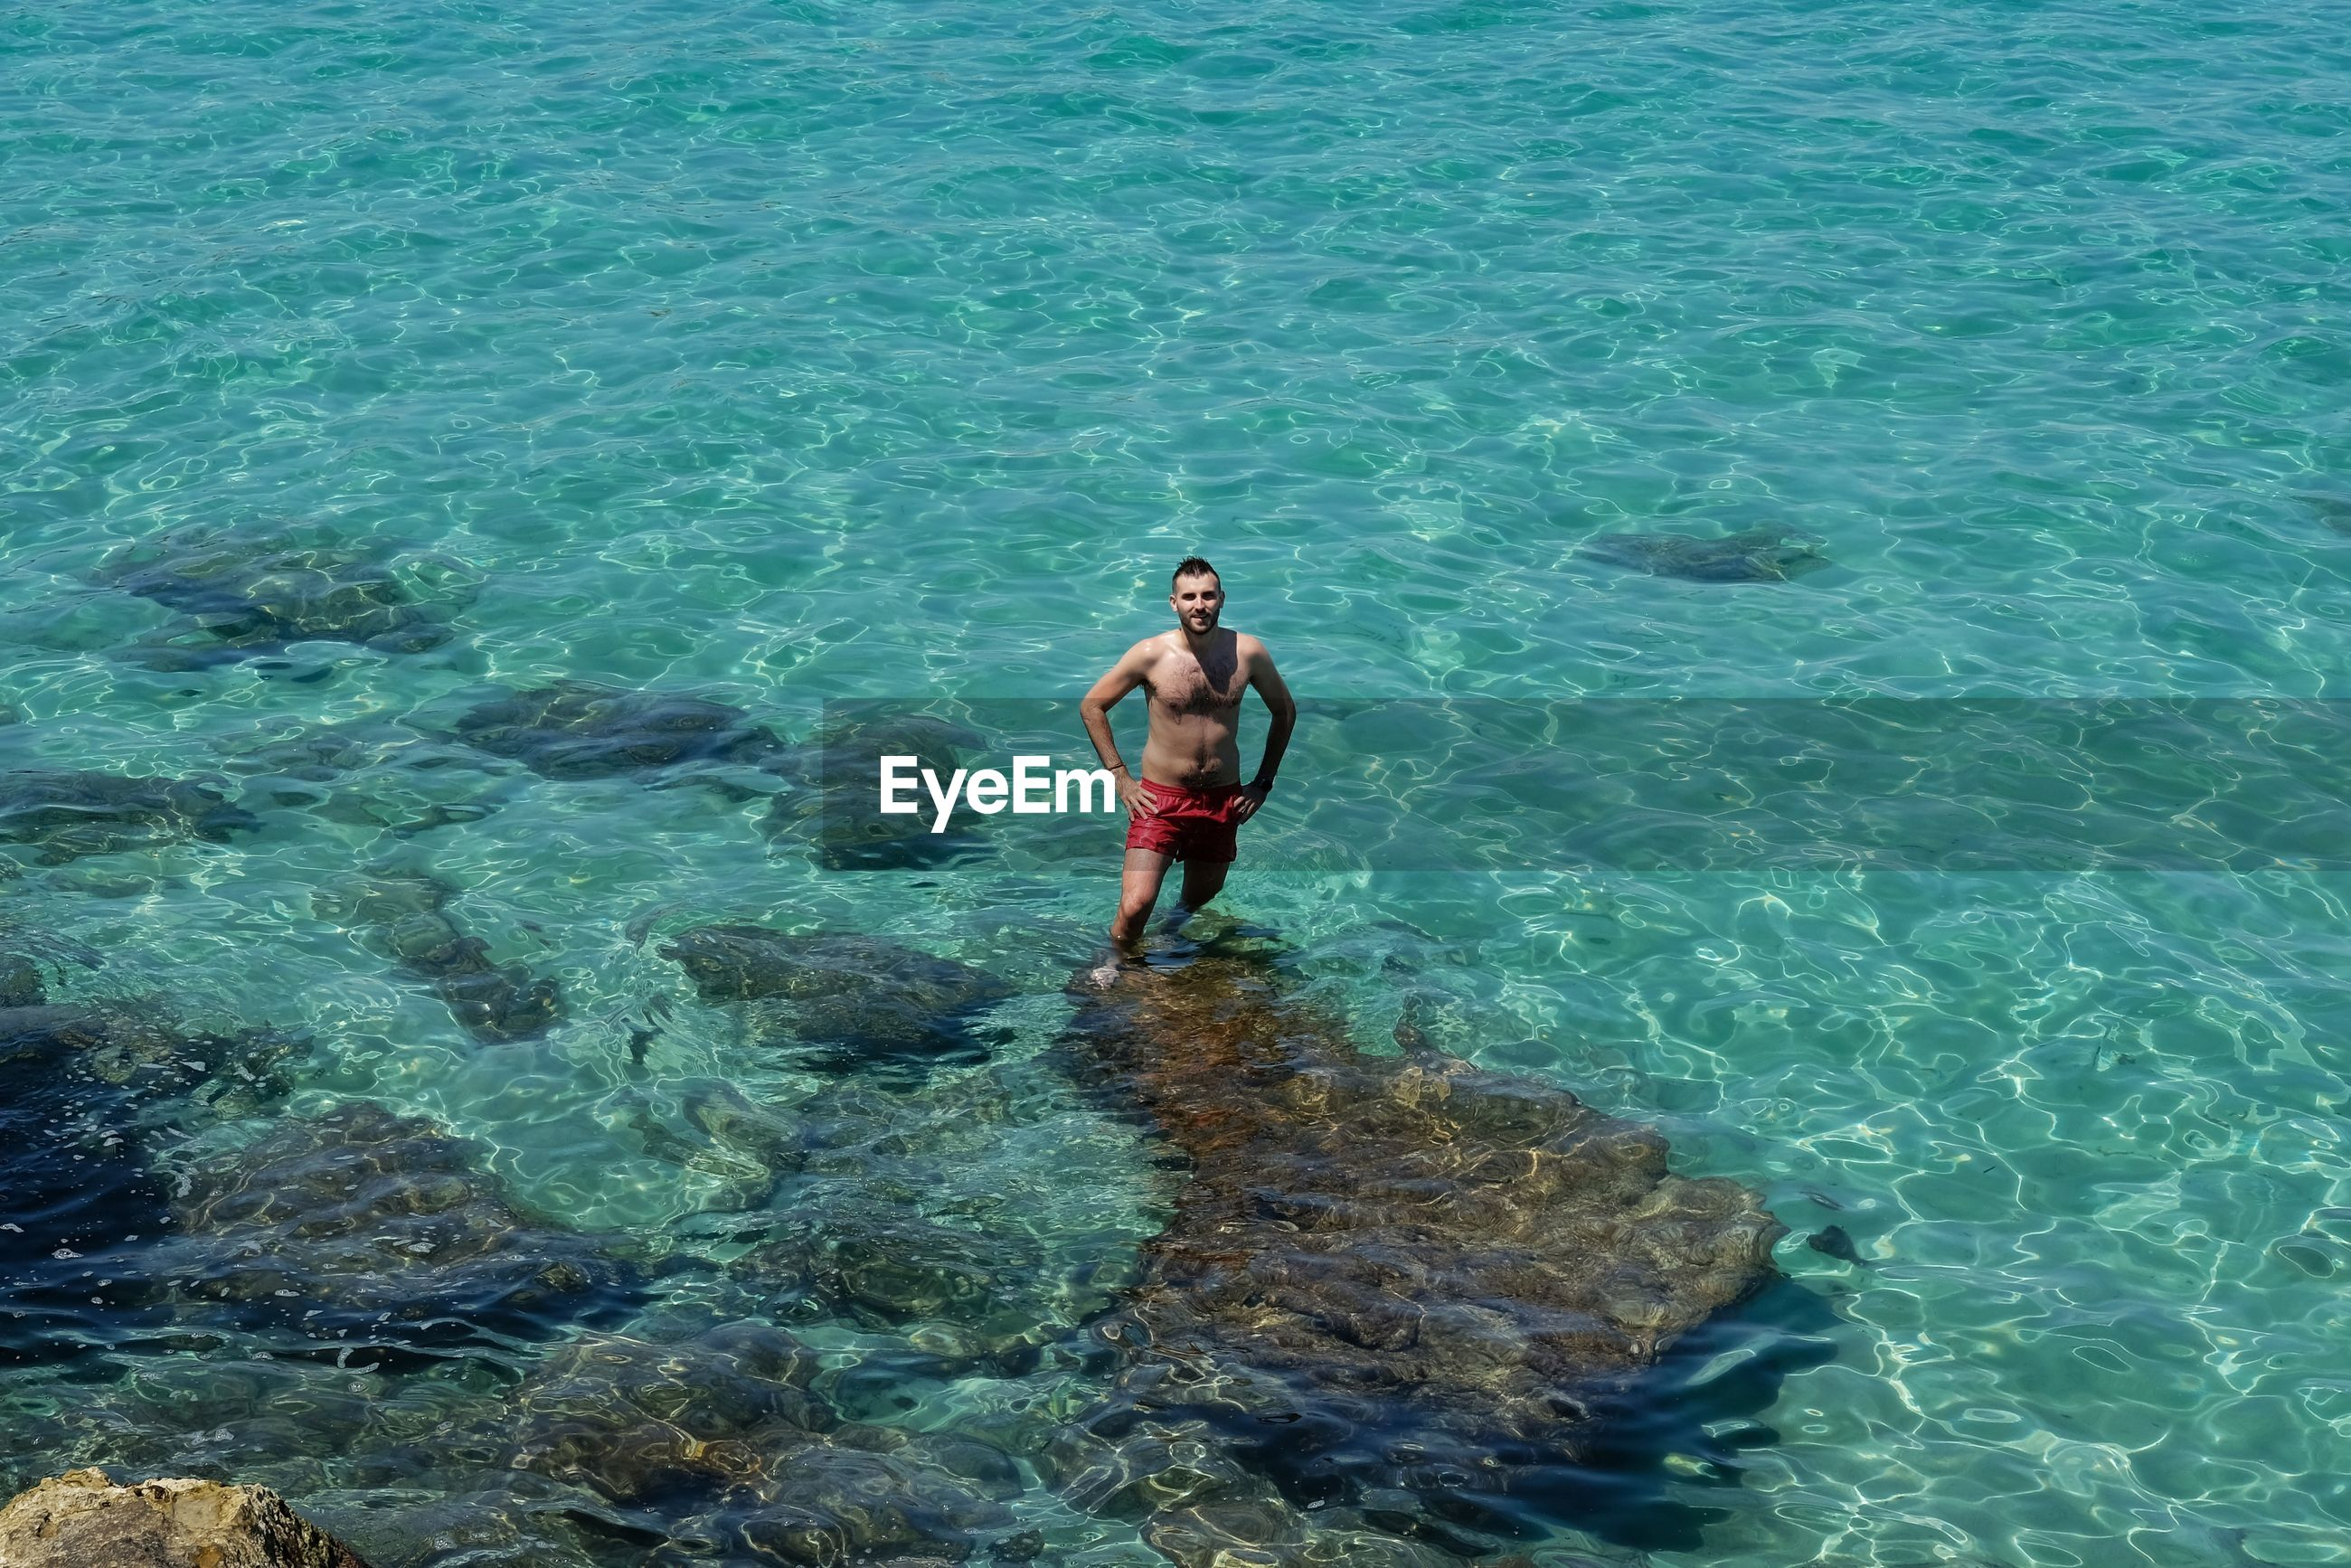 FULL LENGTH OF SHIRTLESS YOUNG MAN IN SEA